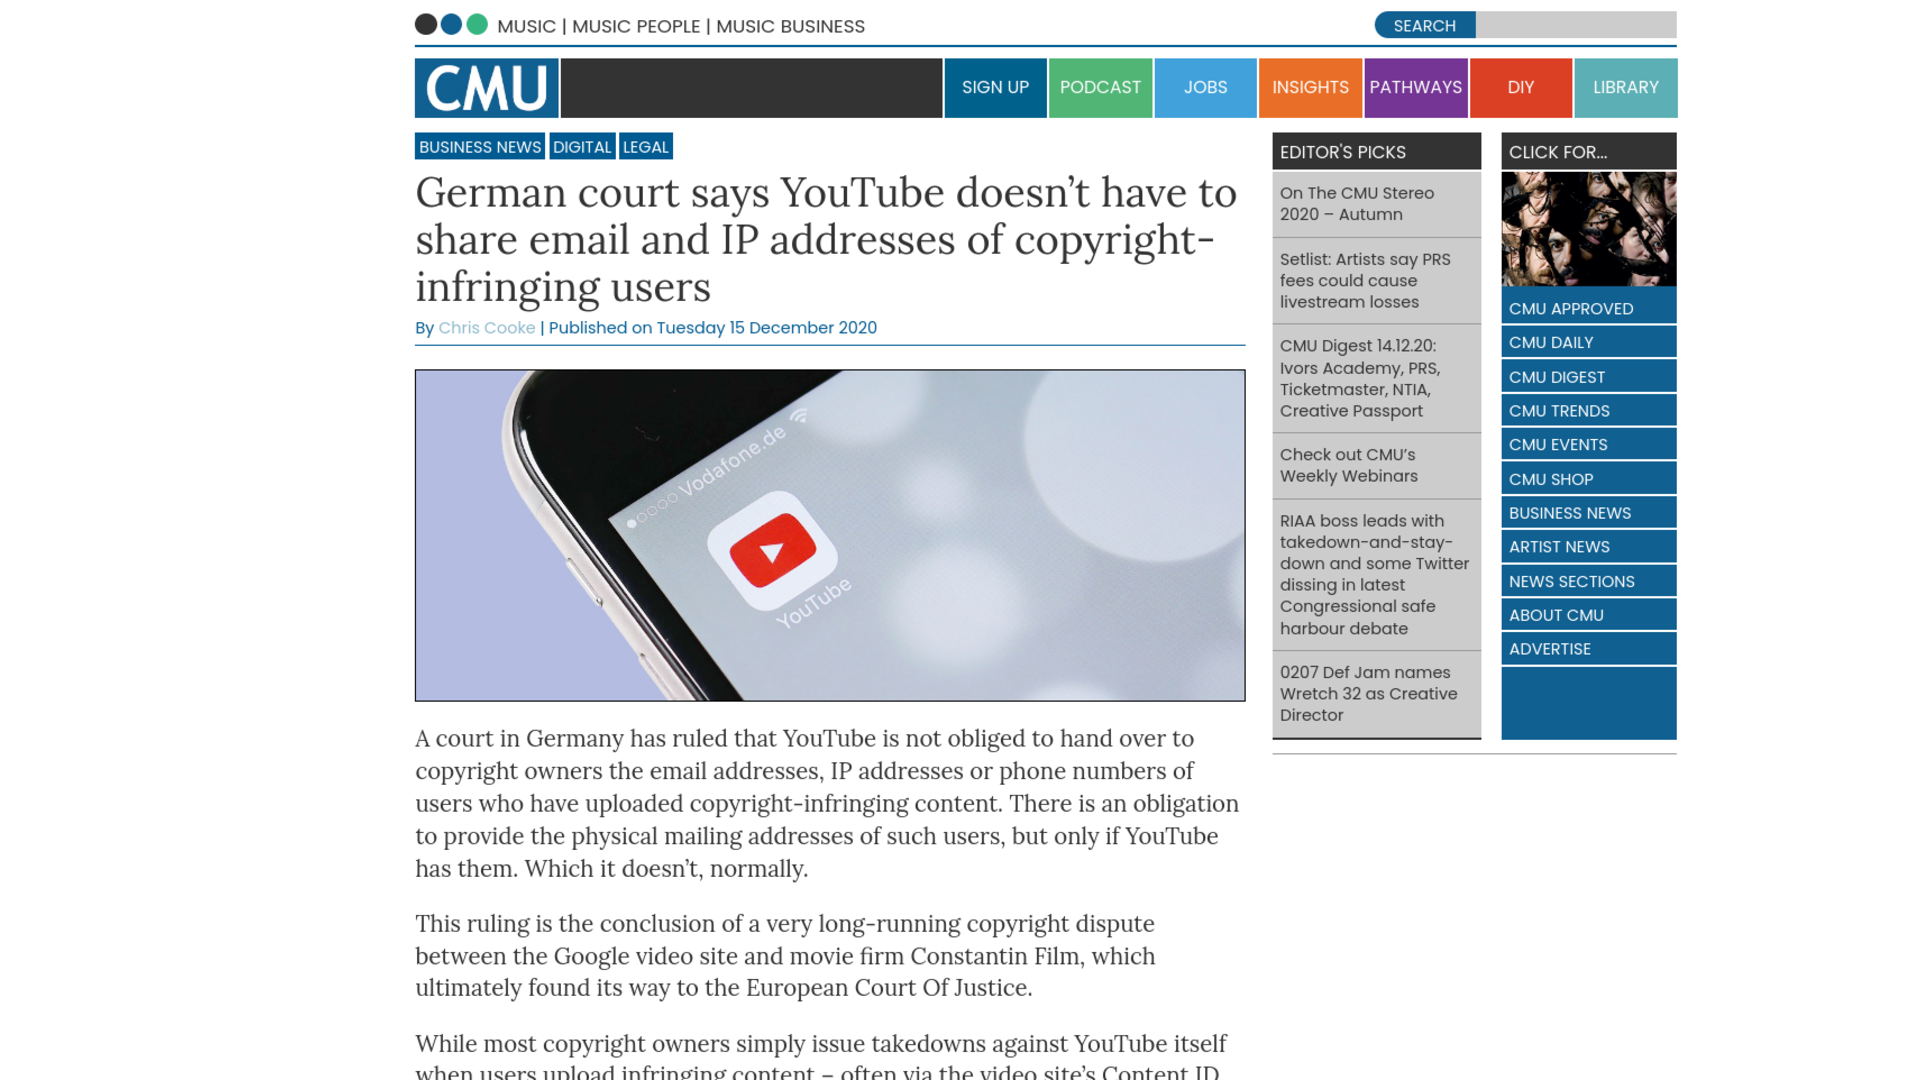 Fairness Rocks News German court says YouTube doesn't have to share email and IP addresses of copyright-infringing users